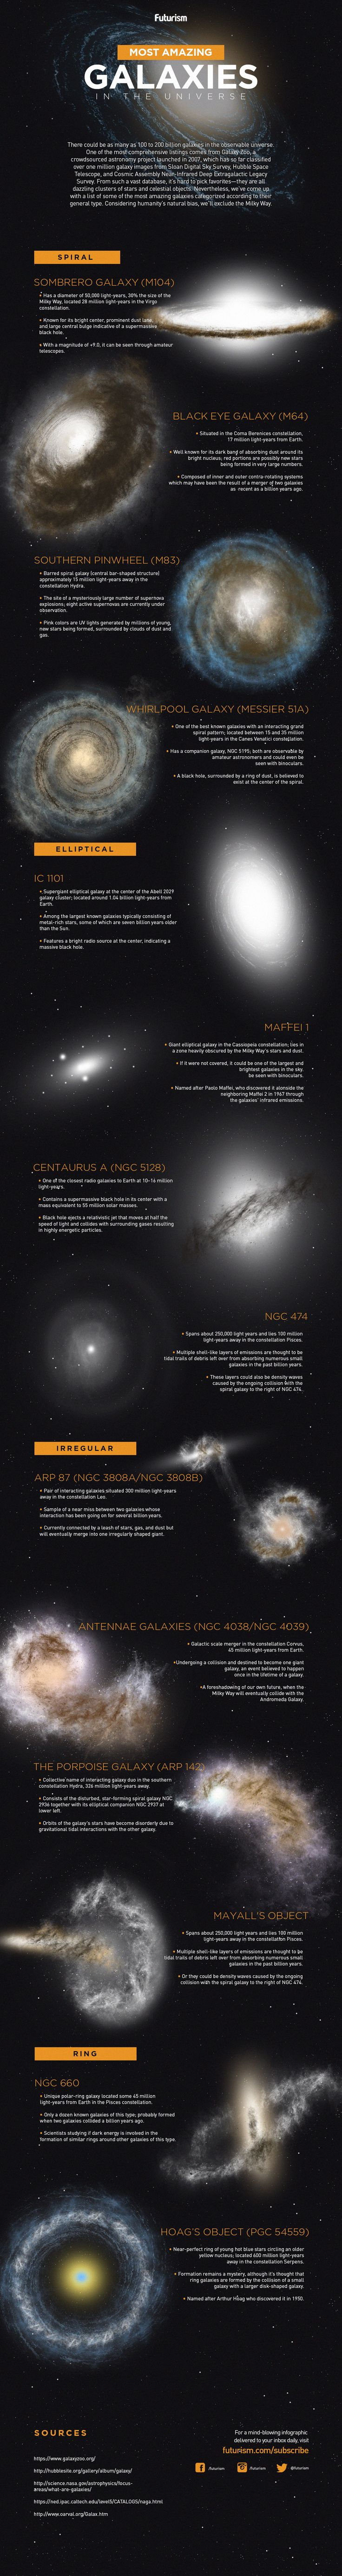 There could be as many as 100 to 200 billion galaxies in the observable universe. Here are some of the most fascinating.